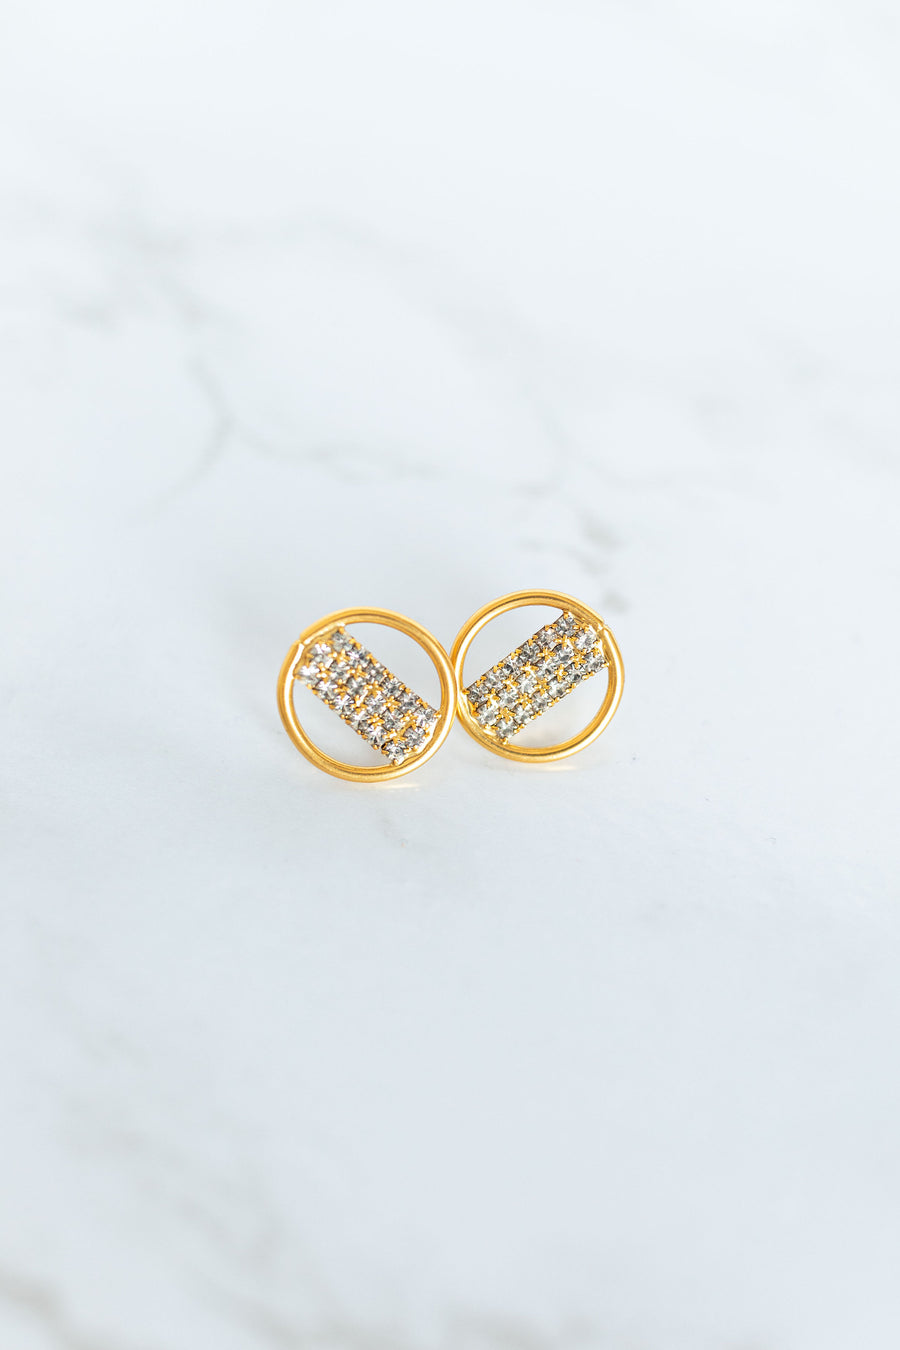 Copy of Evie Earrings